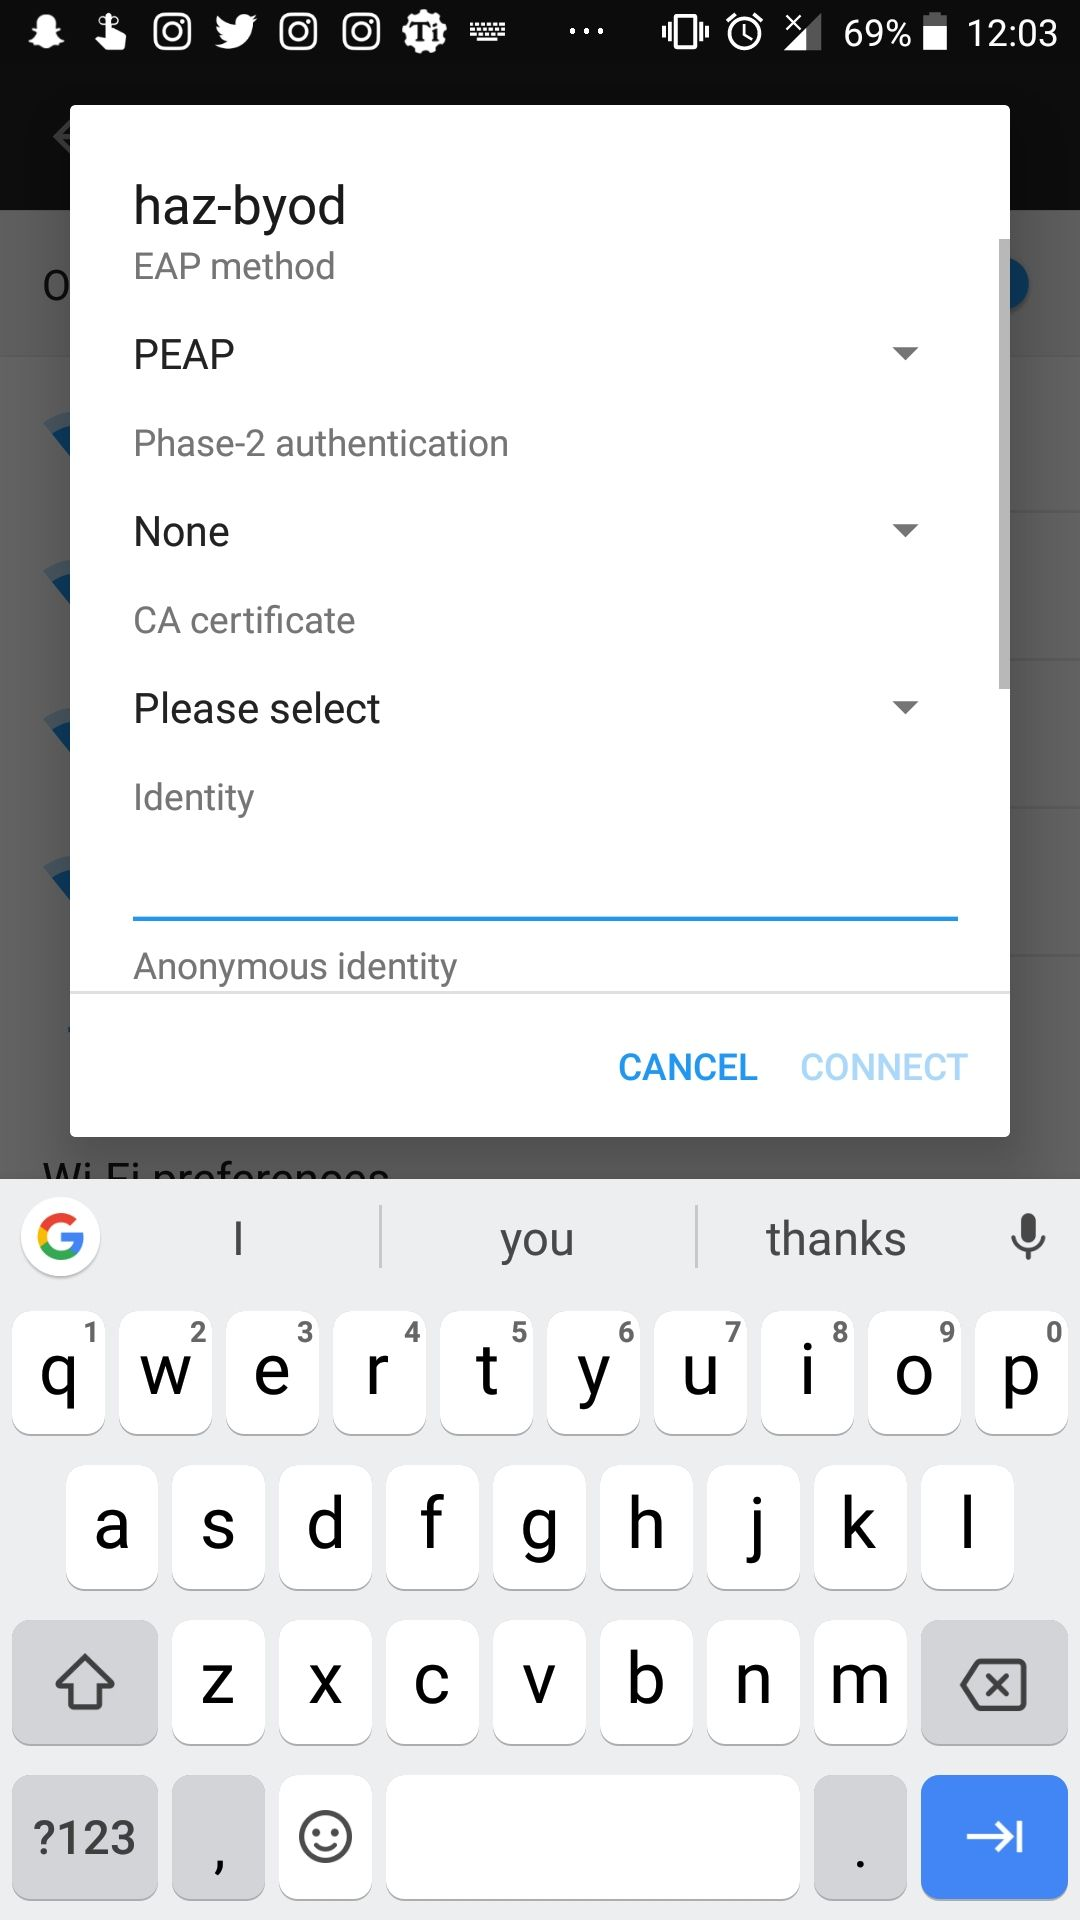 Android 8 0 Oreo Wifi connect option greyed out - OnePlus Community